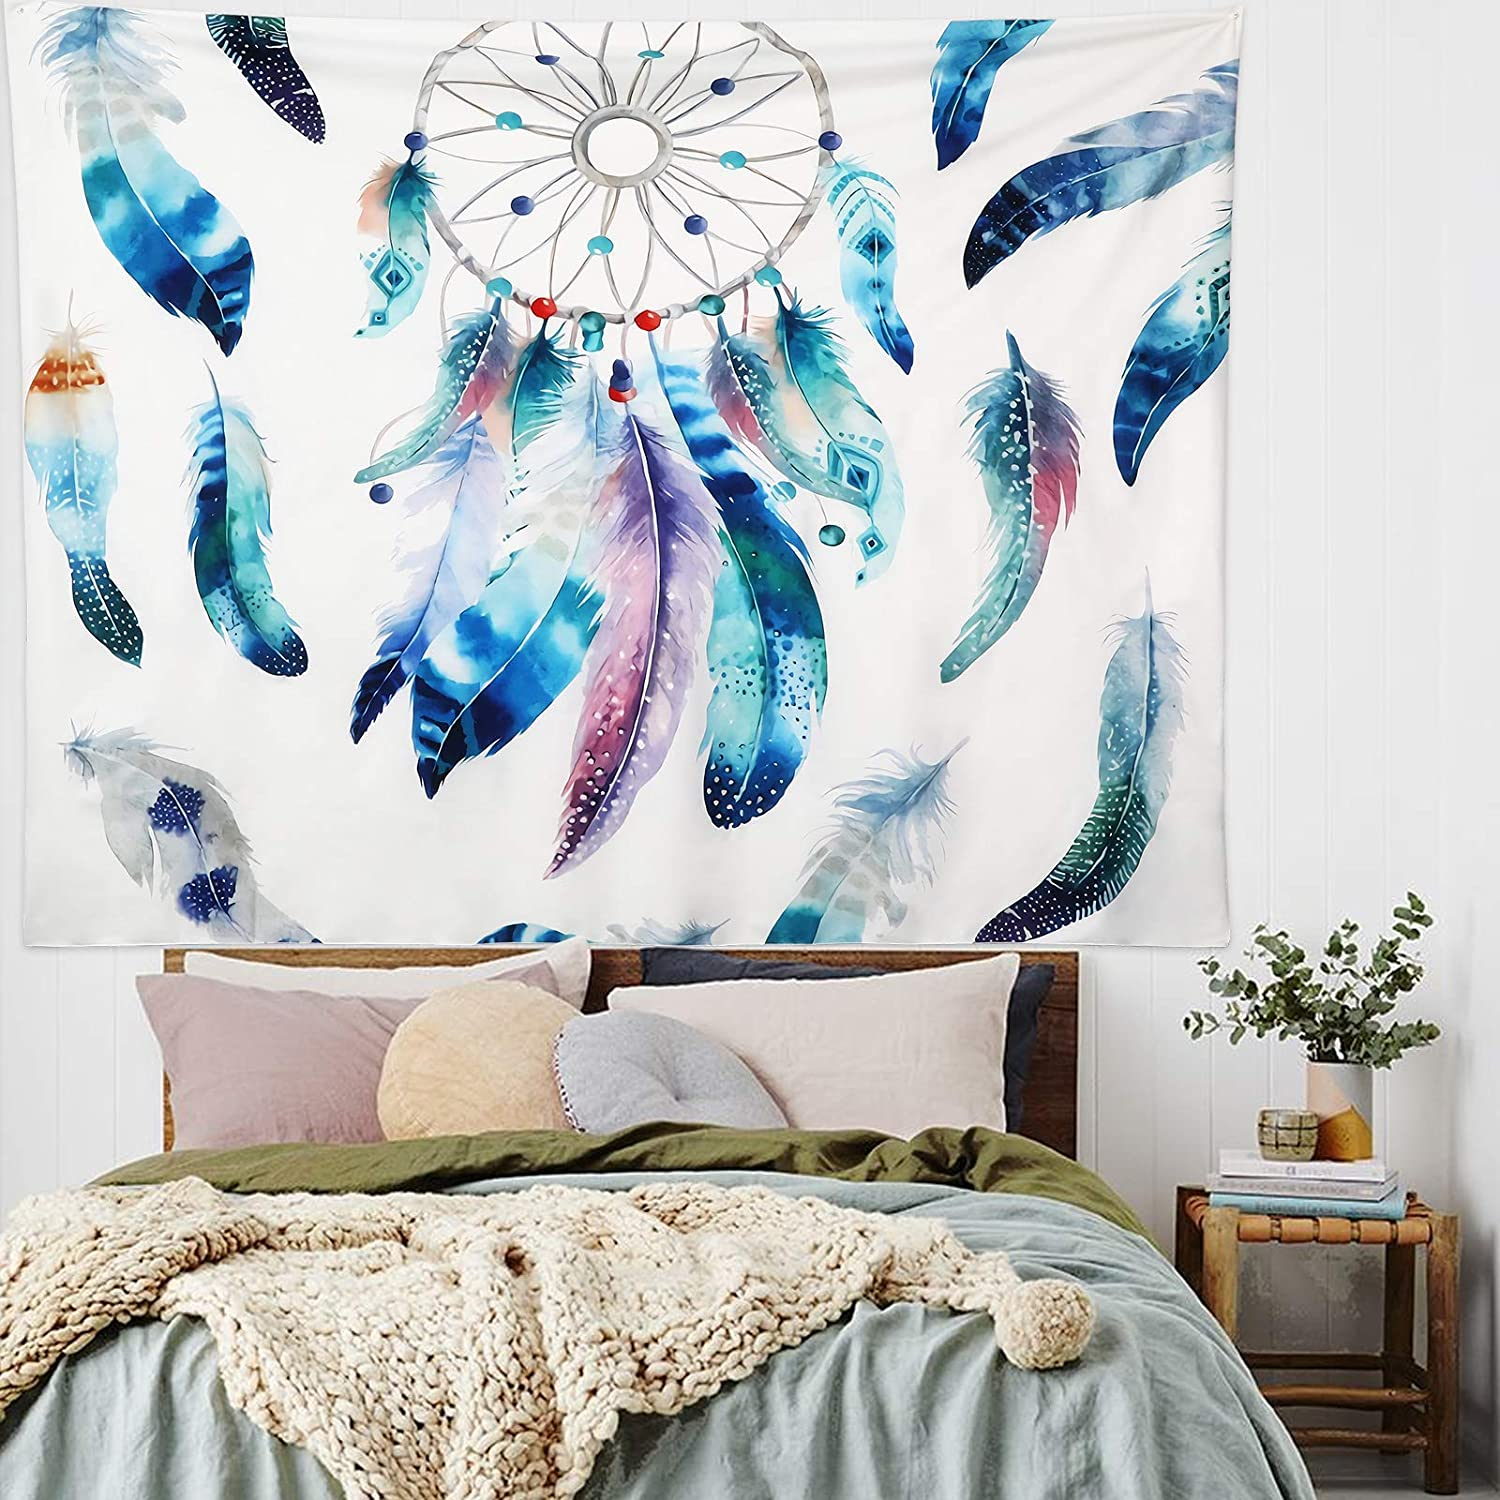 Bohemian Tapestry Aesthetic Wall Hanging - Dream Catcher Tapestries Colorful Psychedelic Feather Tapestry Boho Wall Art Decor for Bedroom Living Room Dorm(51.2 x 59.1 inches)